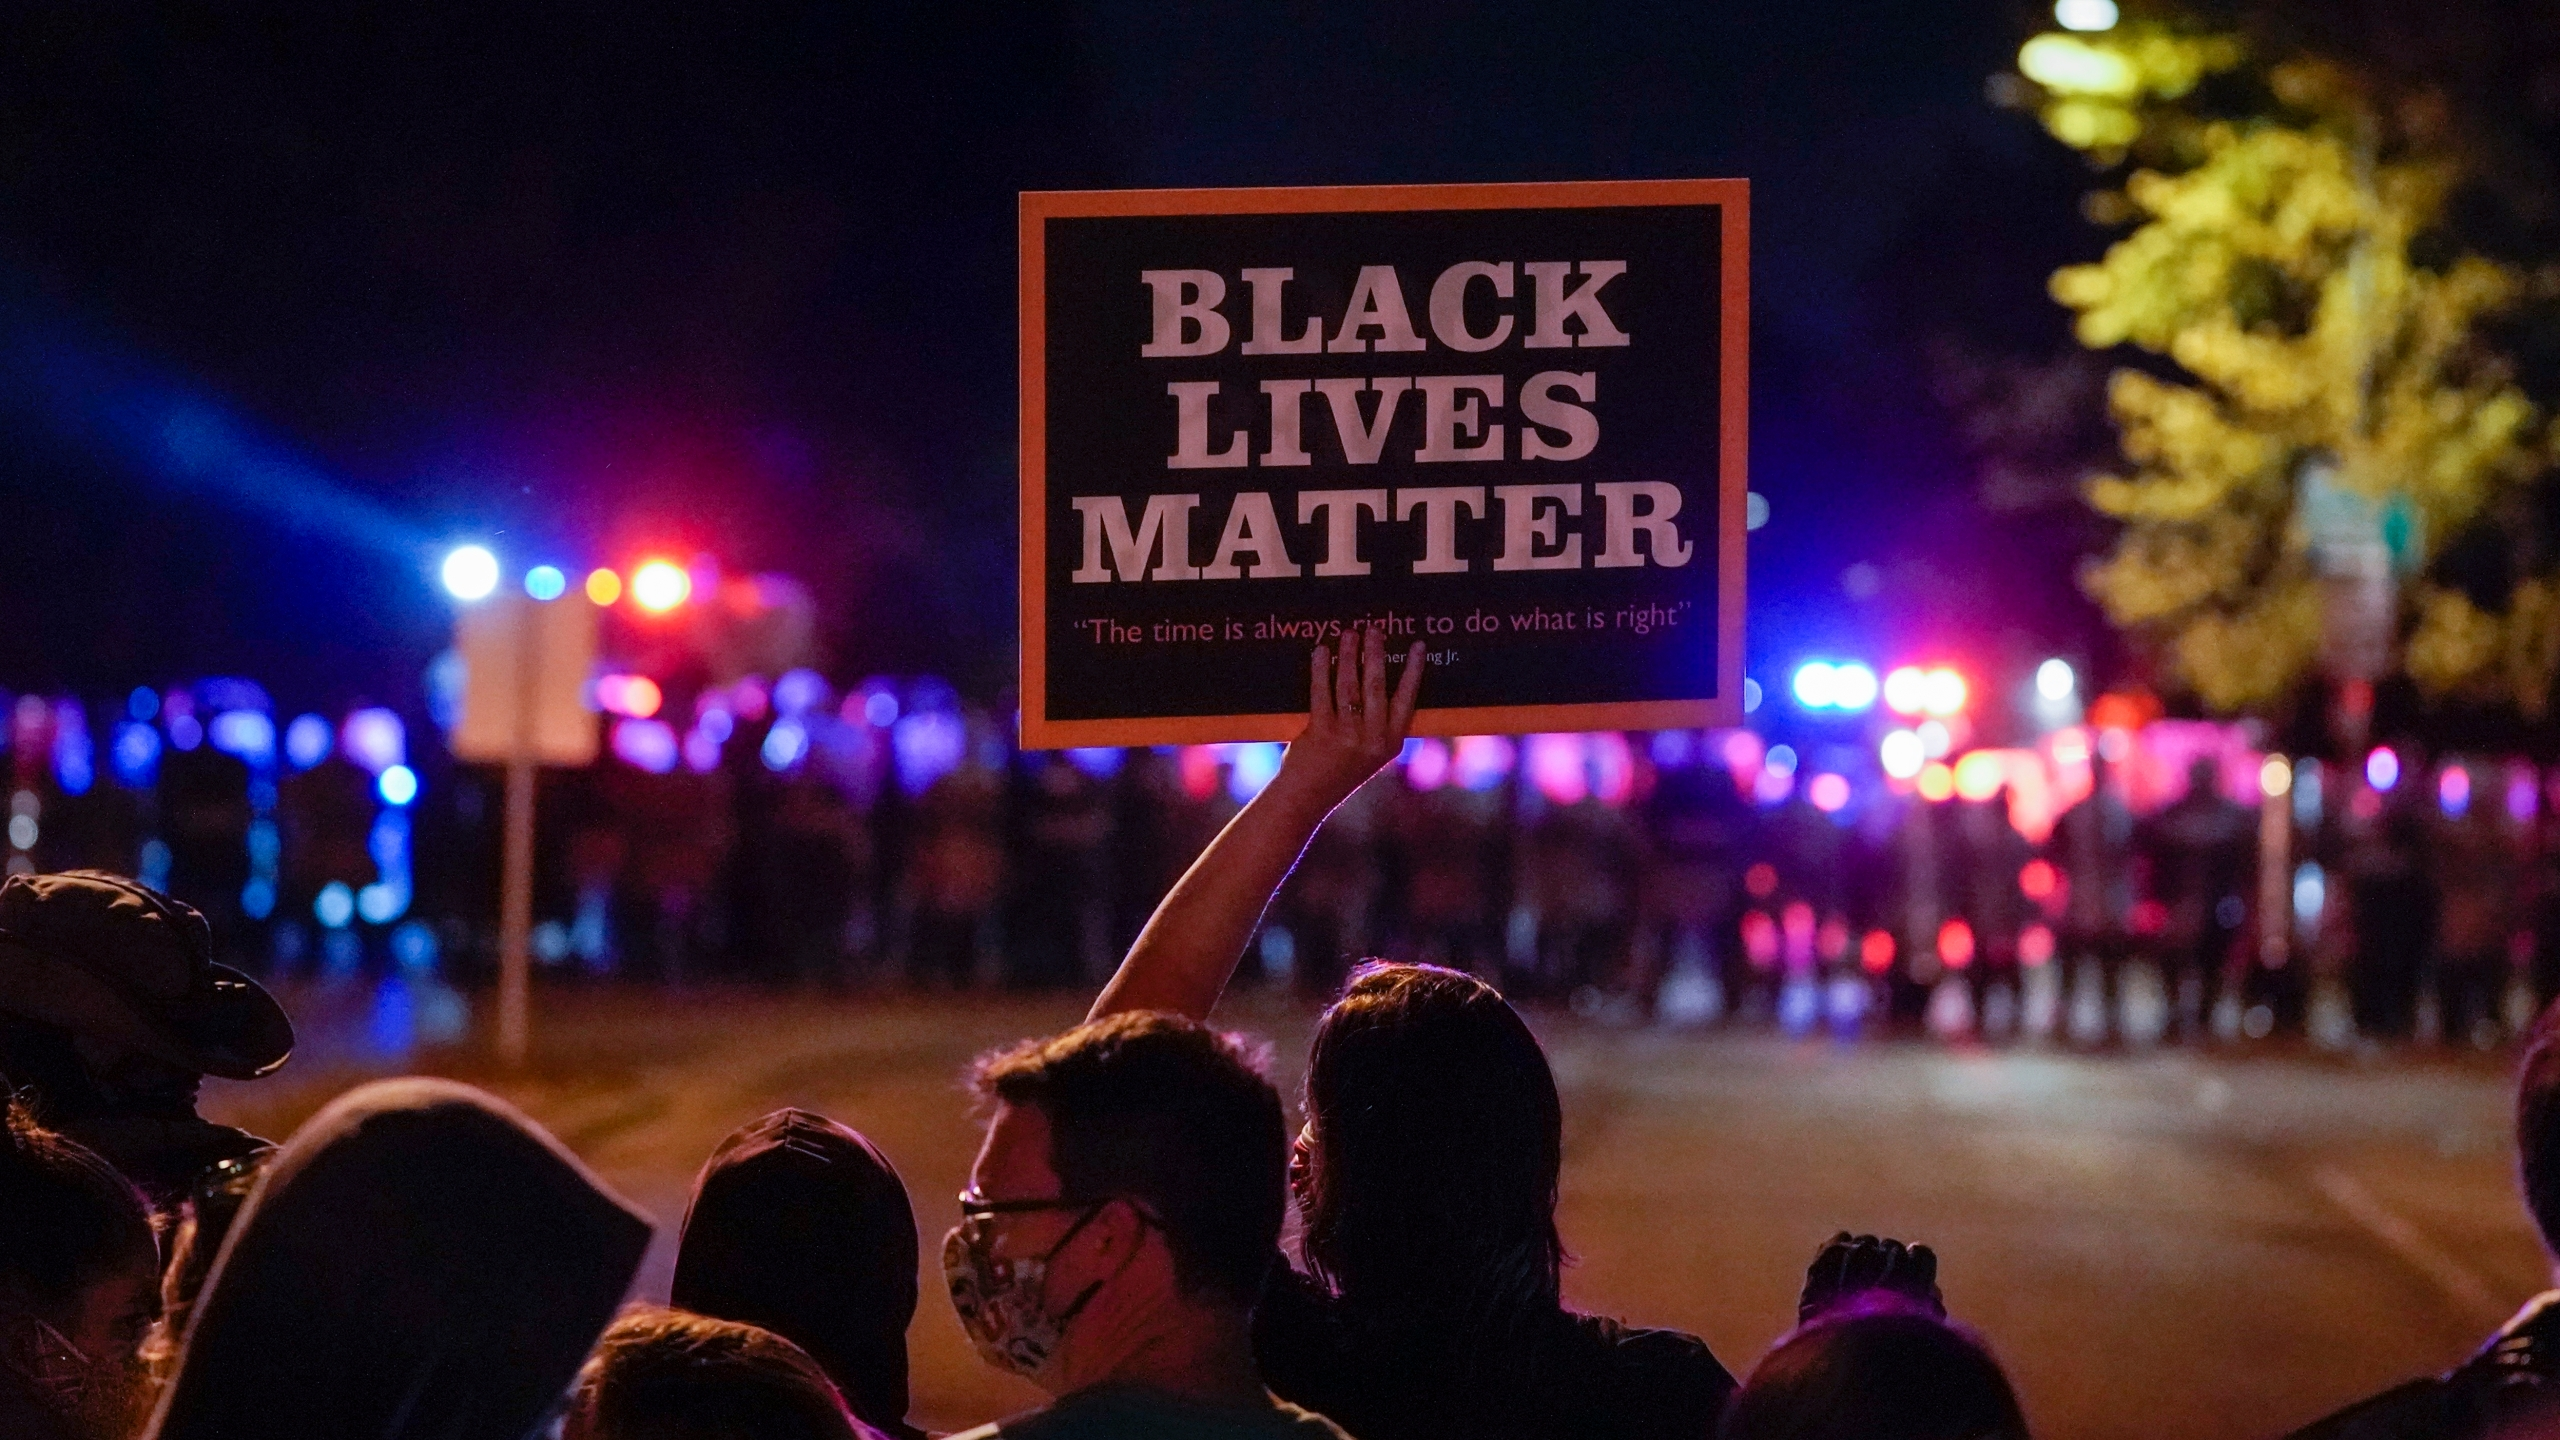 Wauwatosa Halloween 2020 28 arrested, tear gas used in Wisconsin protests | WTRF